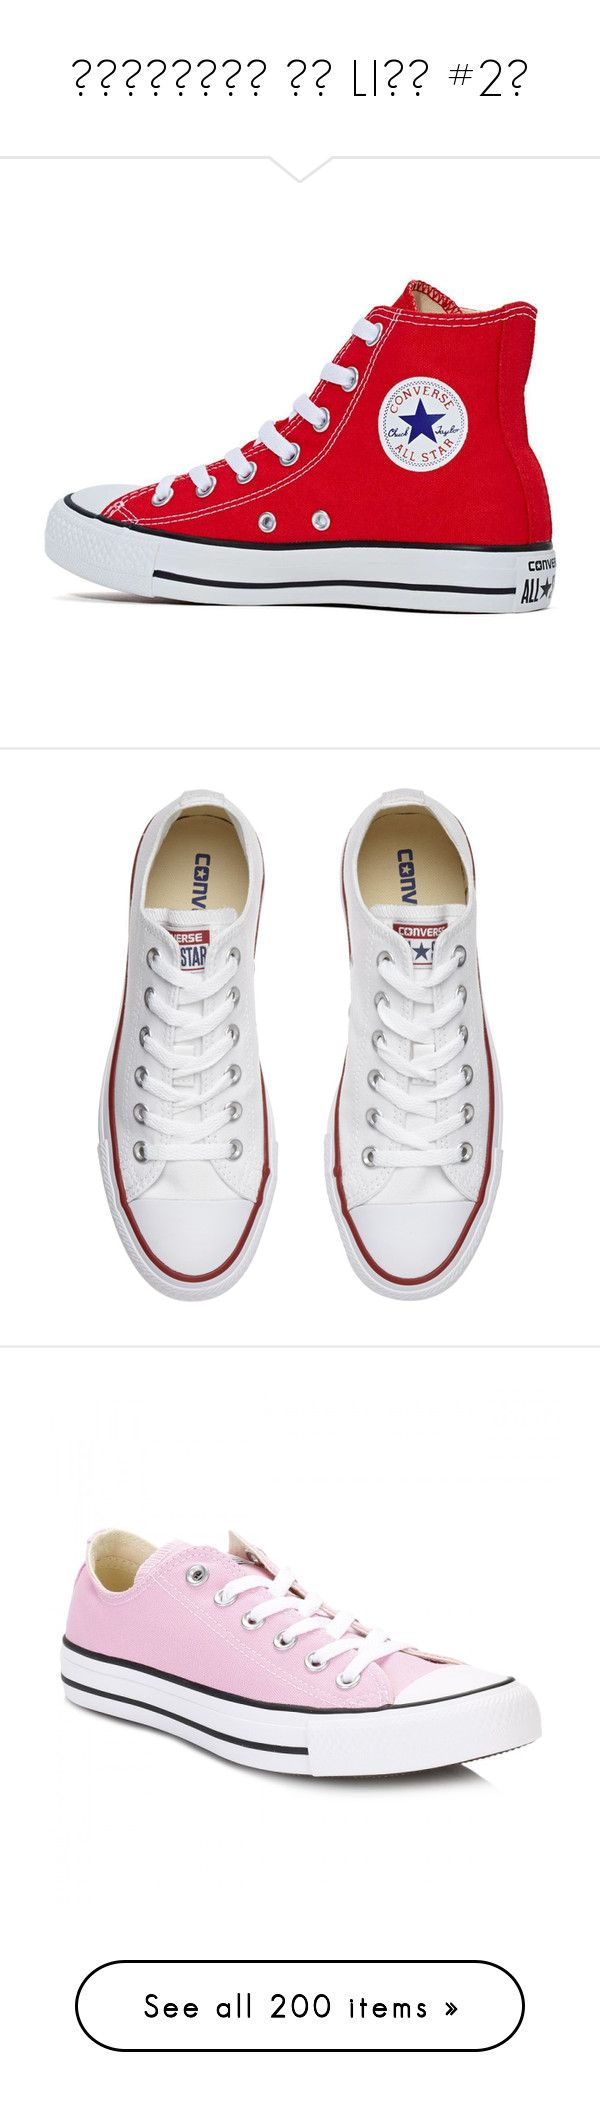 """""""ċȏṅṿєяṡє ıṡ LIҒΣ #2"""" by booknerd1326 ❤ liked on Polyvore featuring shoes, sneakers, converse, 18. converse., red, low heel shoes, lace up shoes, red trainers, high-top sneakers and converse shoes"""